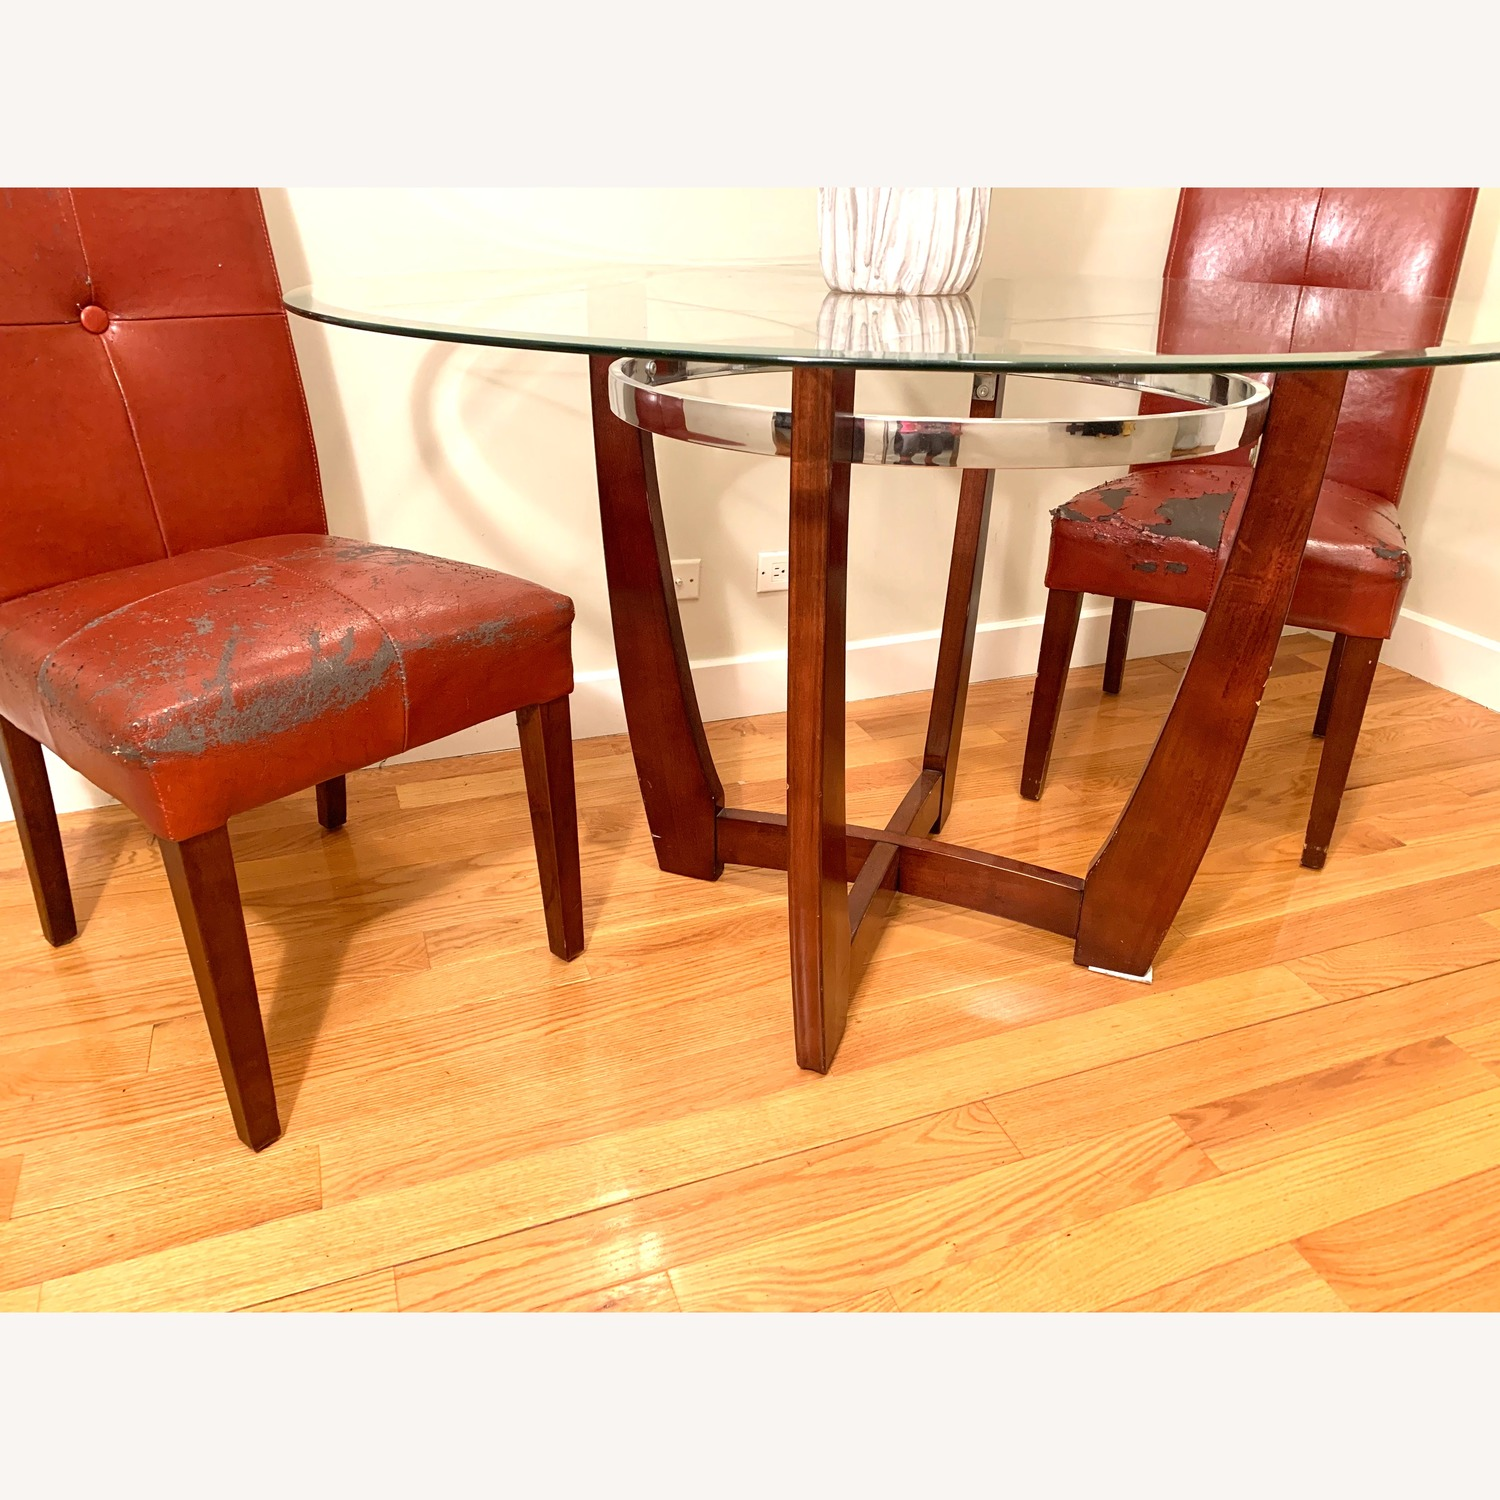 Round Glass Top Dining Table w/ 2 Chairs